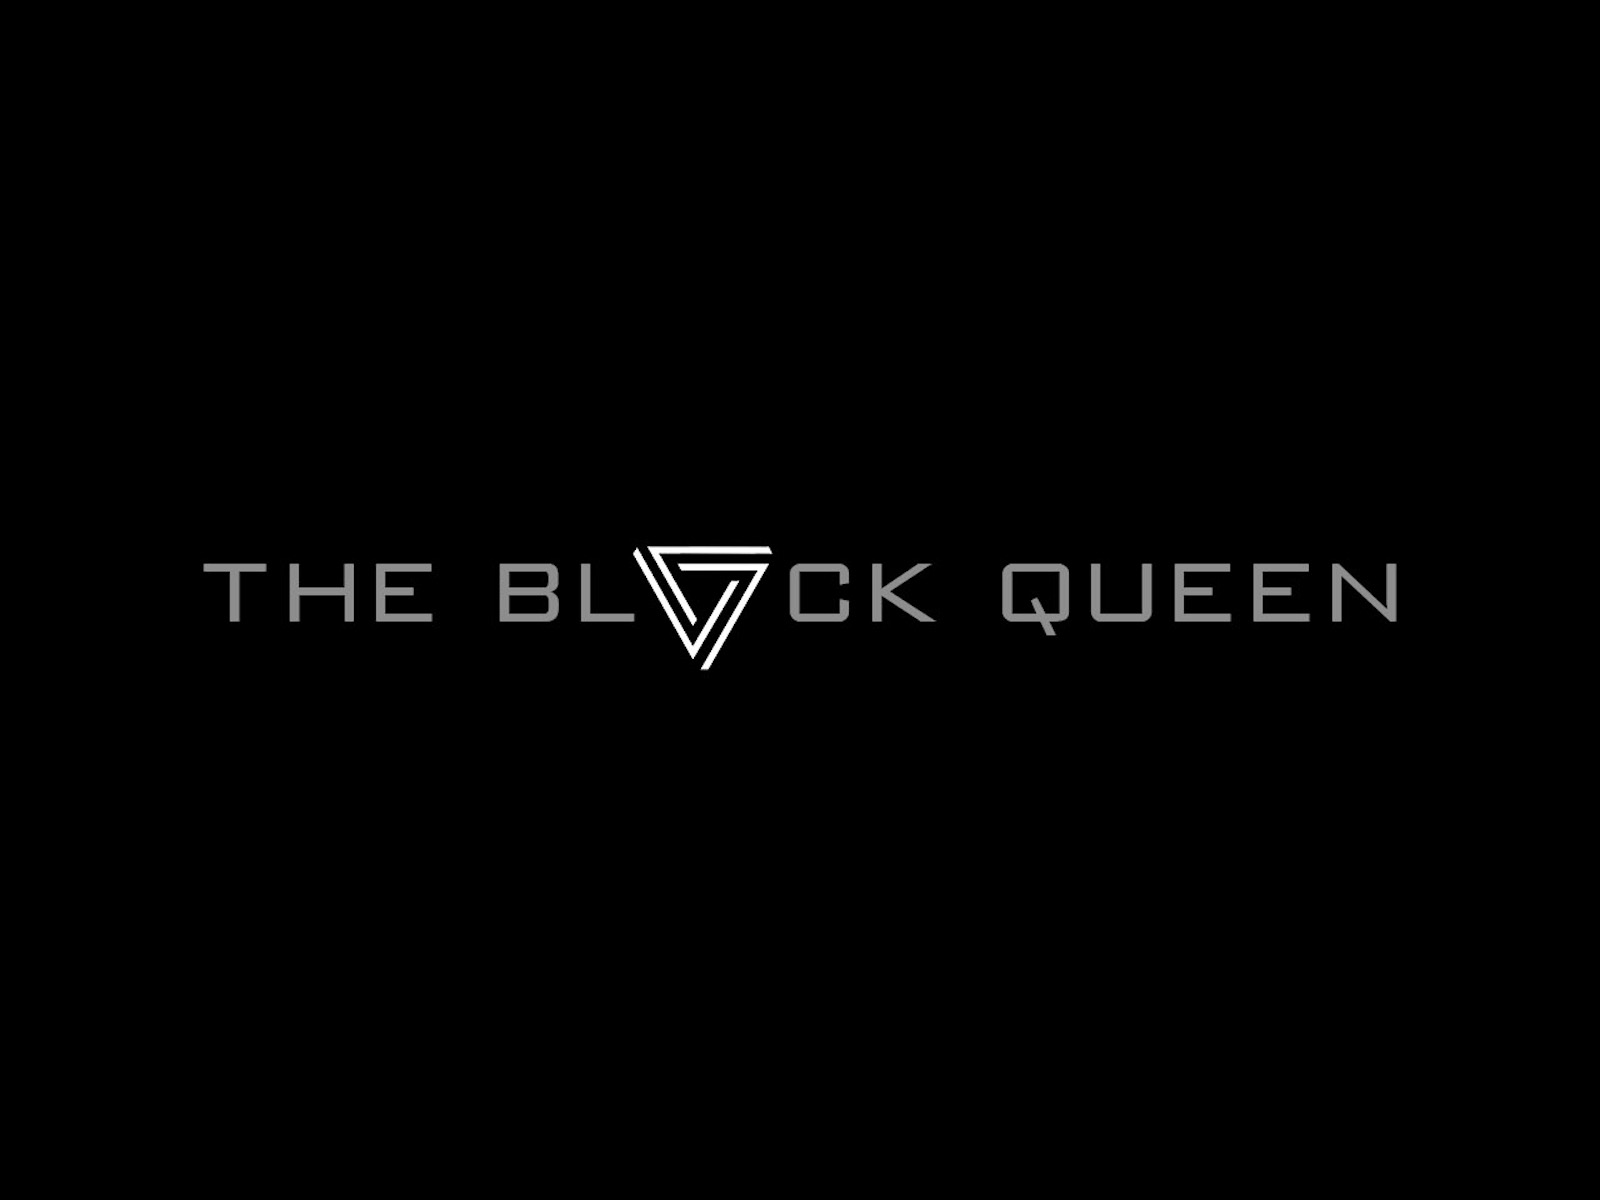 MUSIC VIDEO – THE BLACK QUEEN / Distanved